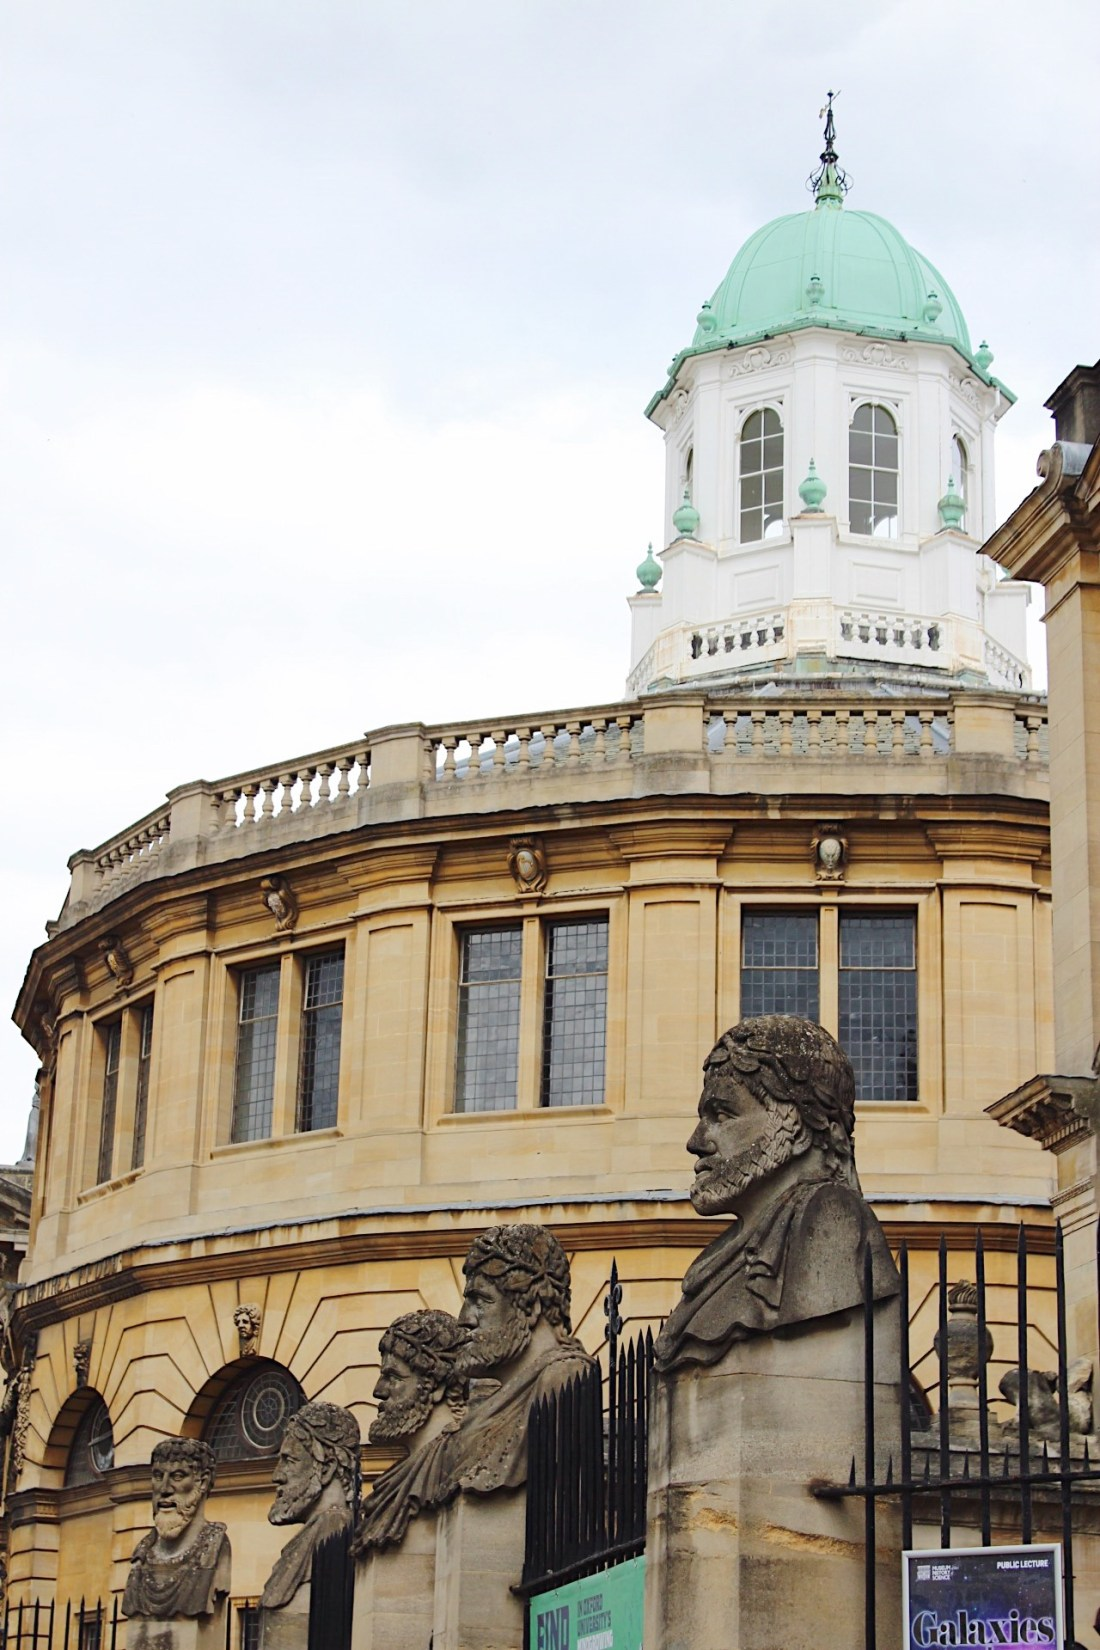 Check out my favorite restaurants and pubs to eat at and my list of best places to see while you're visiting the University of Oxford.